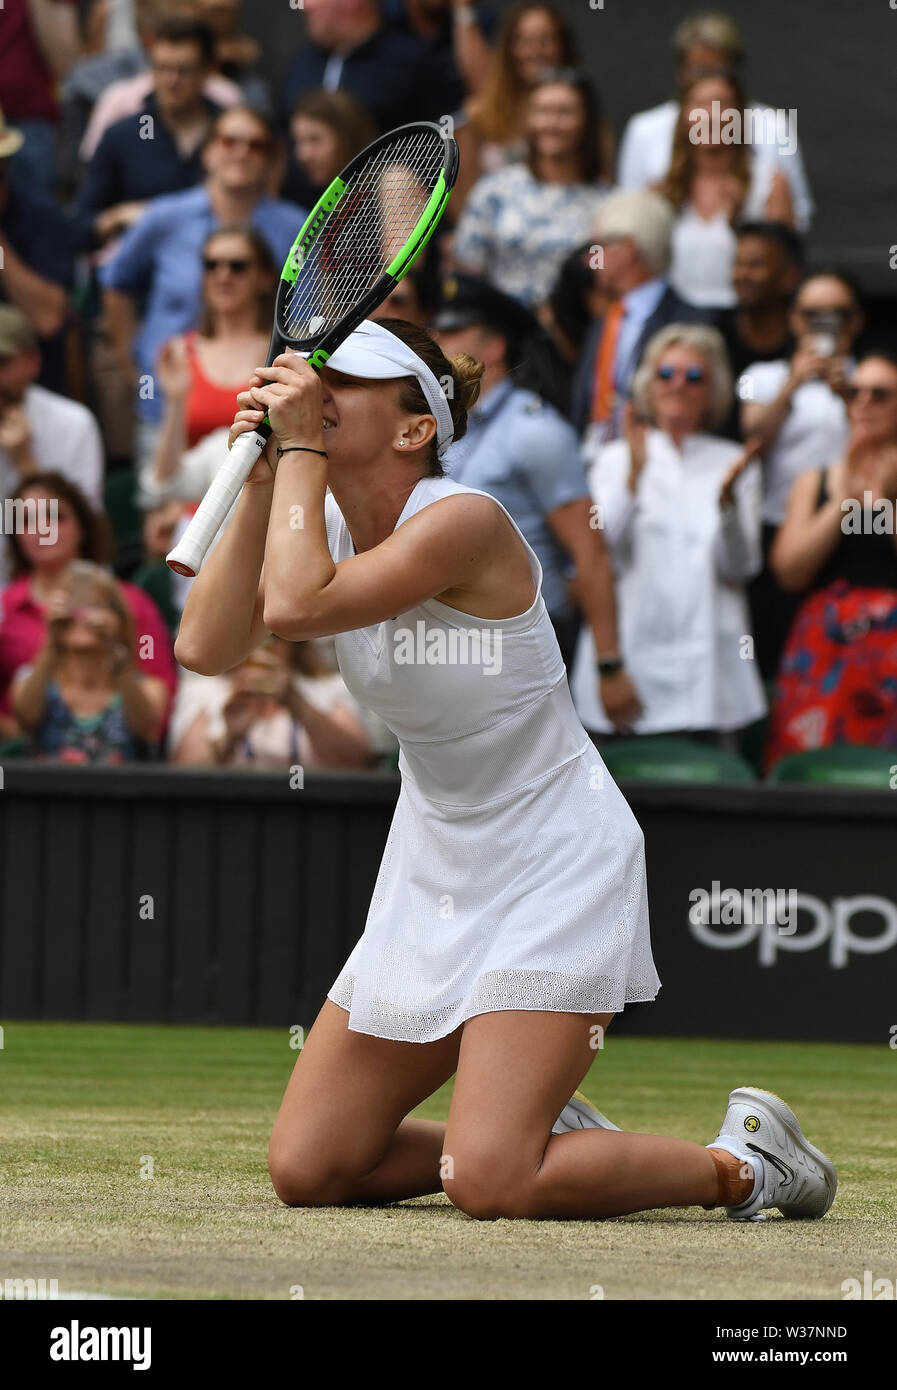 London, UK. 13th July, 2019. The Championships Wimbledon 2019 13072019 Simona Halep( ROU) wins Ladies Final Credit: Roger Parker/Alamy Live News - Stock Image